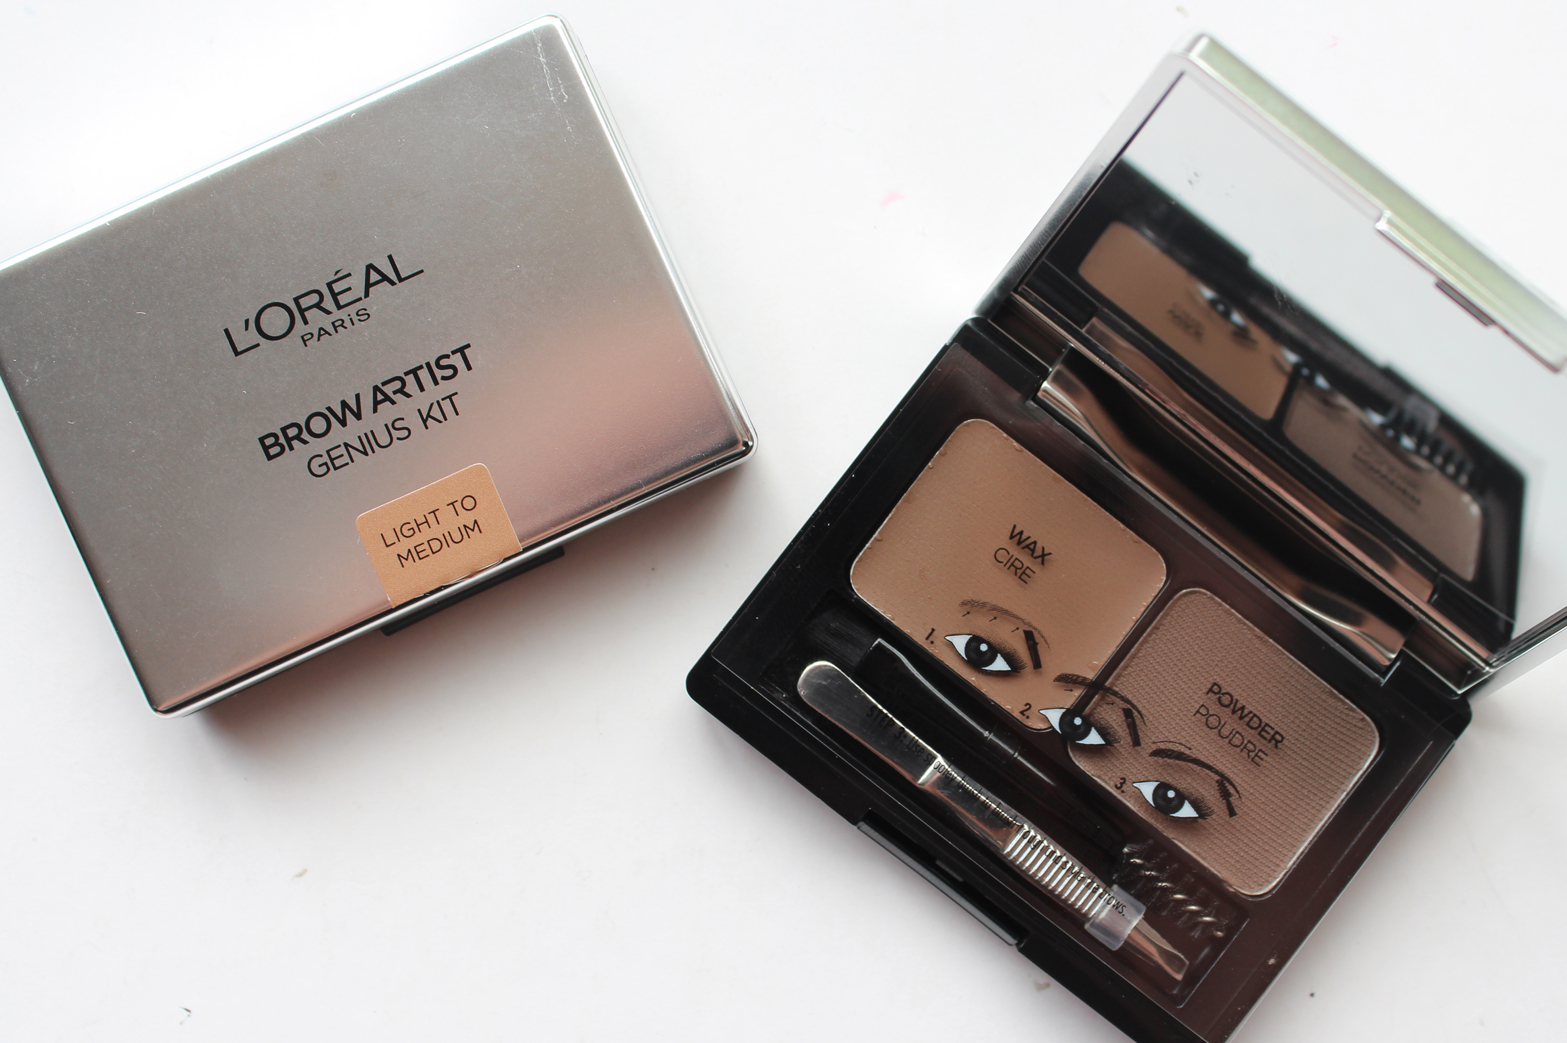 L'OREAL PARIS | New Releases October/November '15 - Review + Swatches - Brow Artist Genuis Kit - CassandraMyee